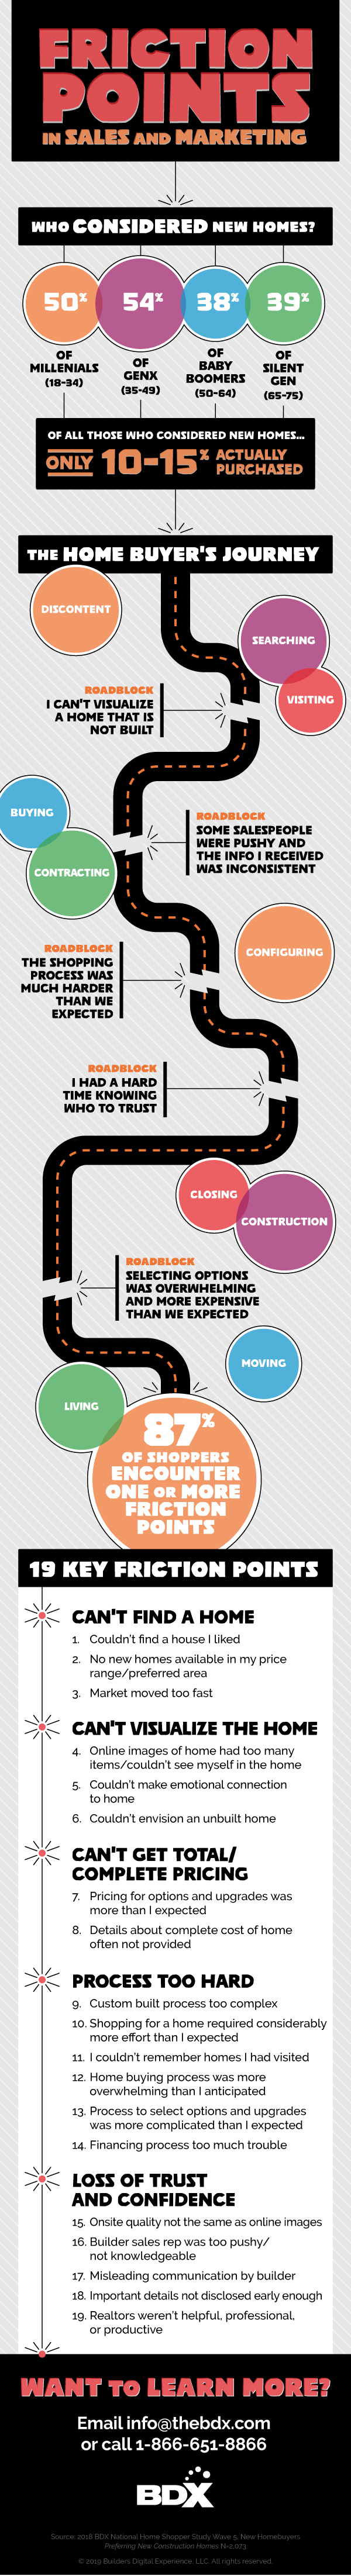 Infographic Reveals 19 Key Friction Points For Homebuyers During Their Journey